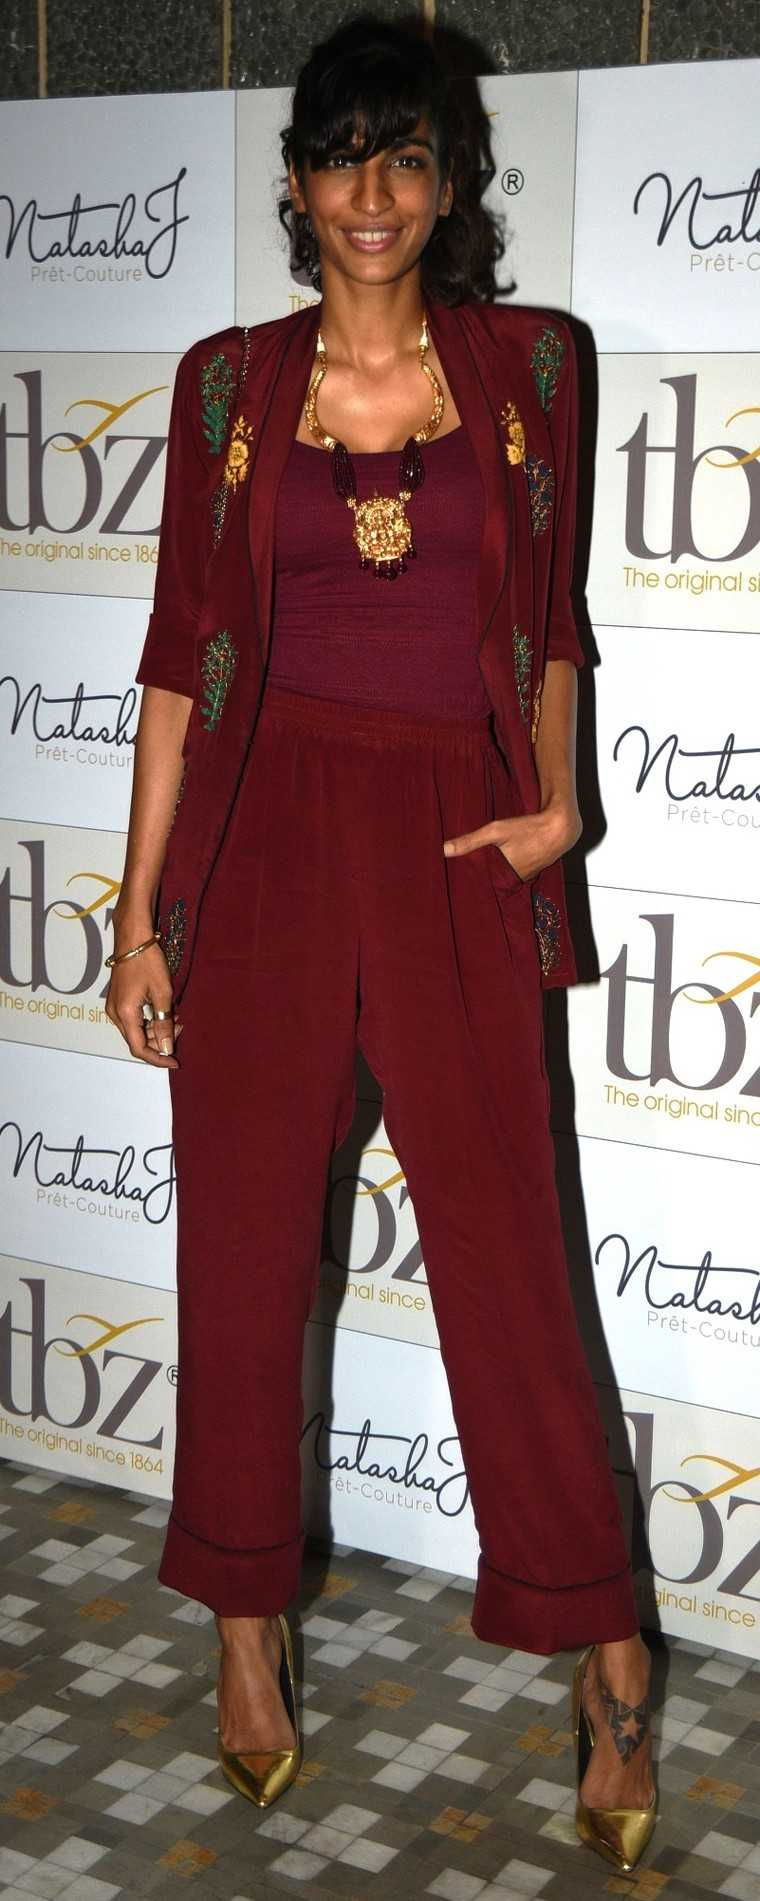 For her appearance at a recent event, Anushka Manchanda opted for easy Marsala separates by Natasha J with a statement necklace from TBZ.